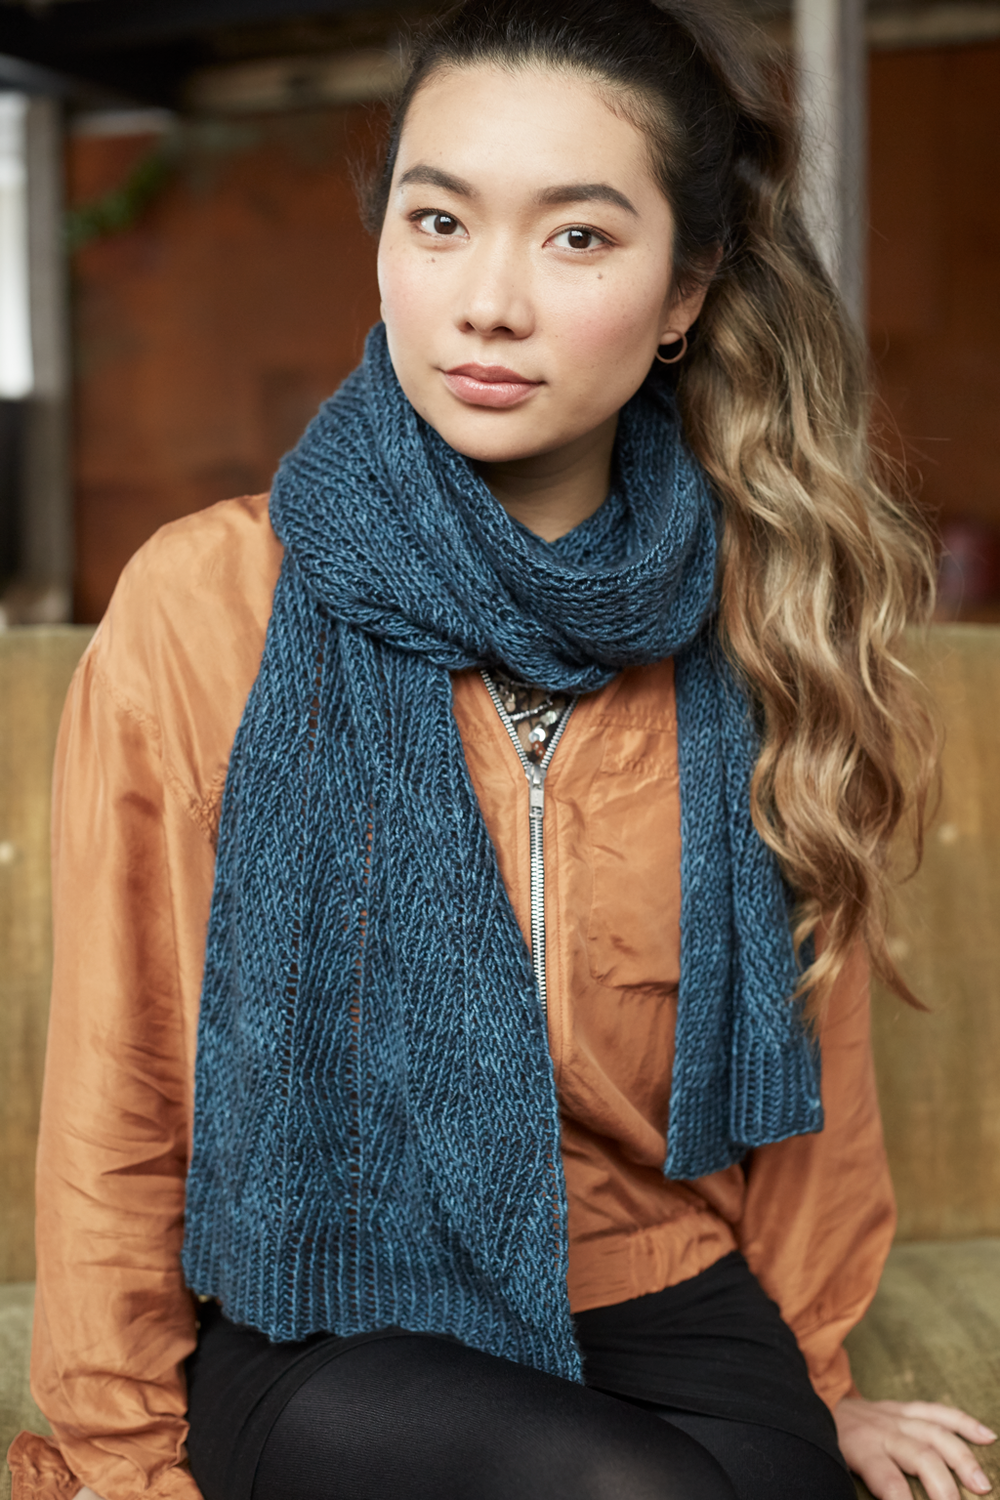 Ondeto Scarf in Pom Pom Quarterly 19 Photo by Amy Gwatkin